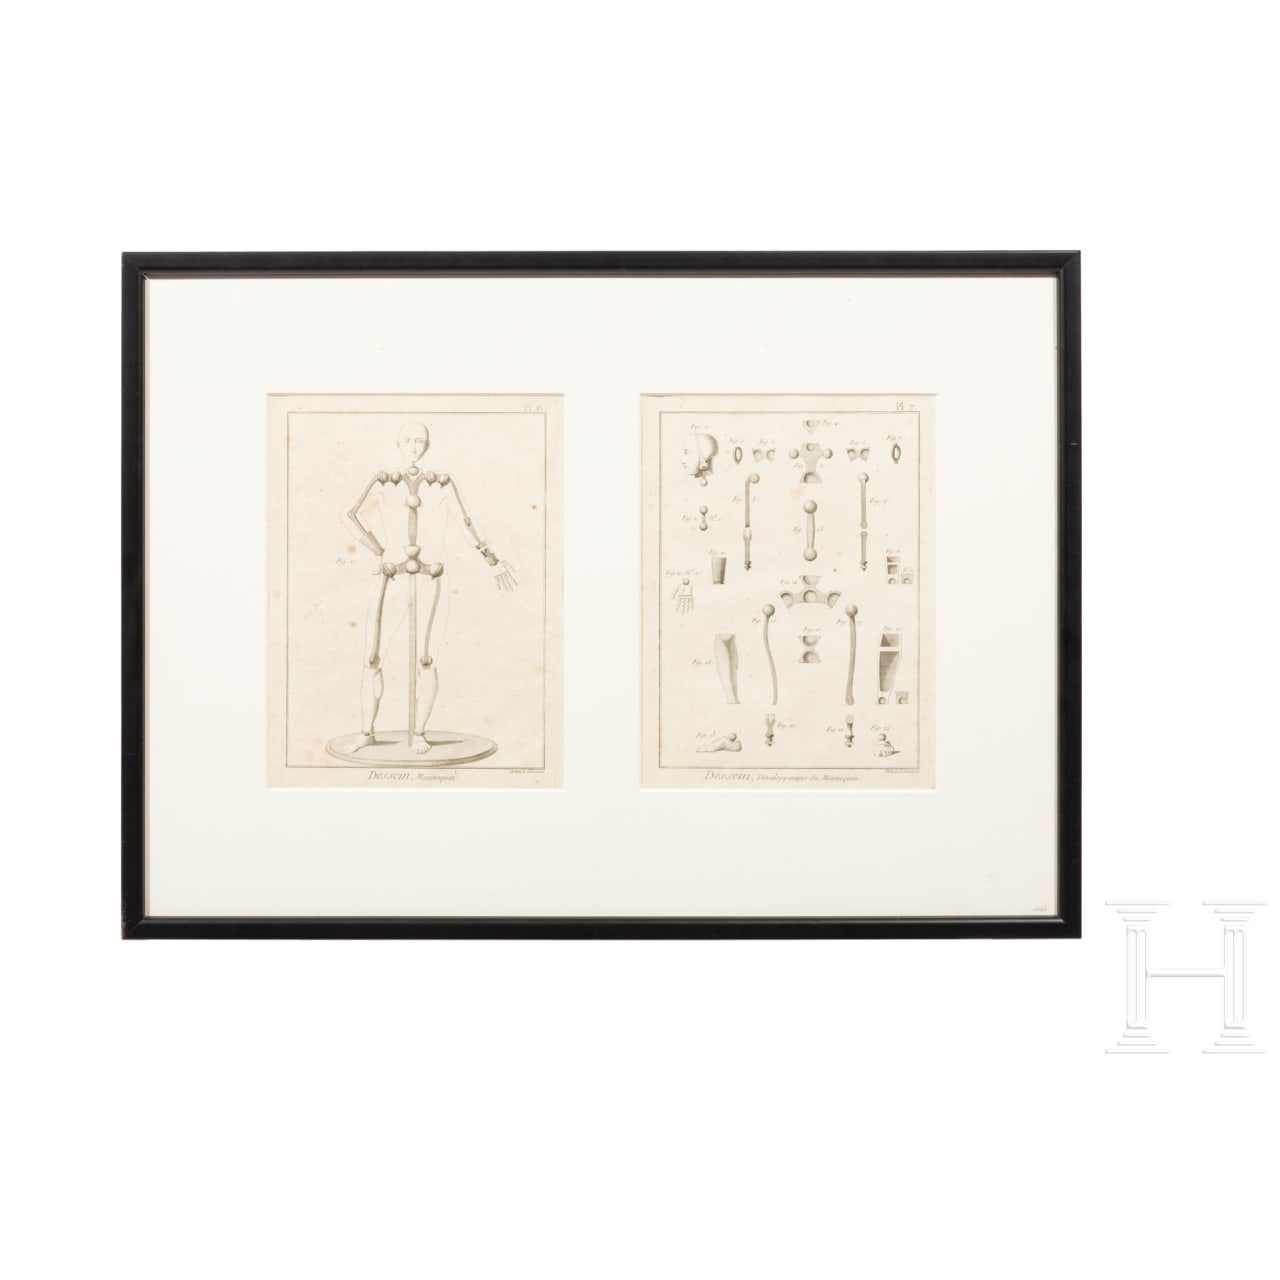 A framed French graphic showing mannequins and their construction, labelled Bernard Direxit, 19th century